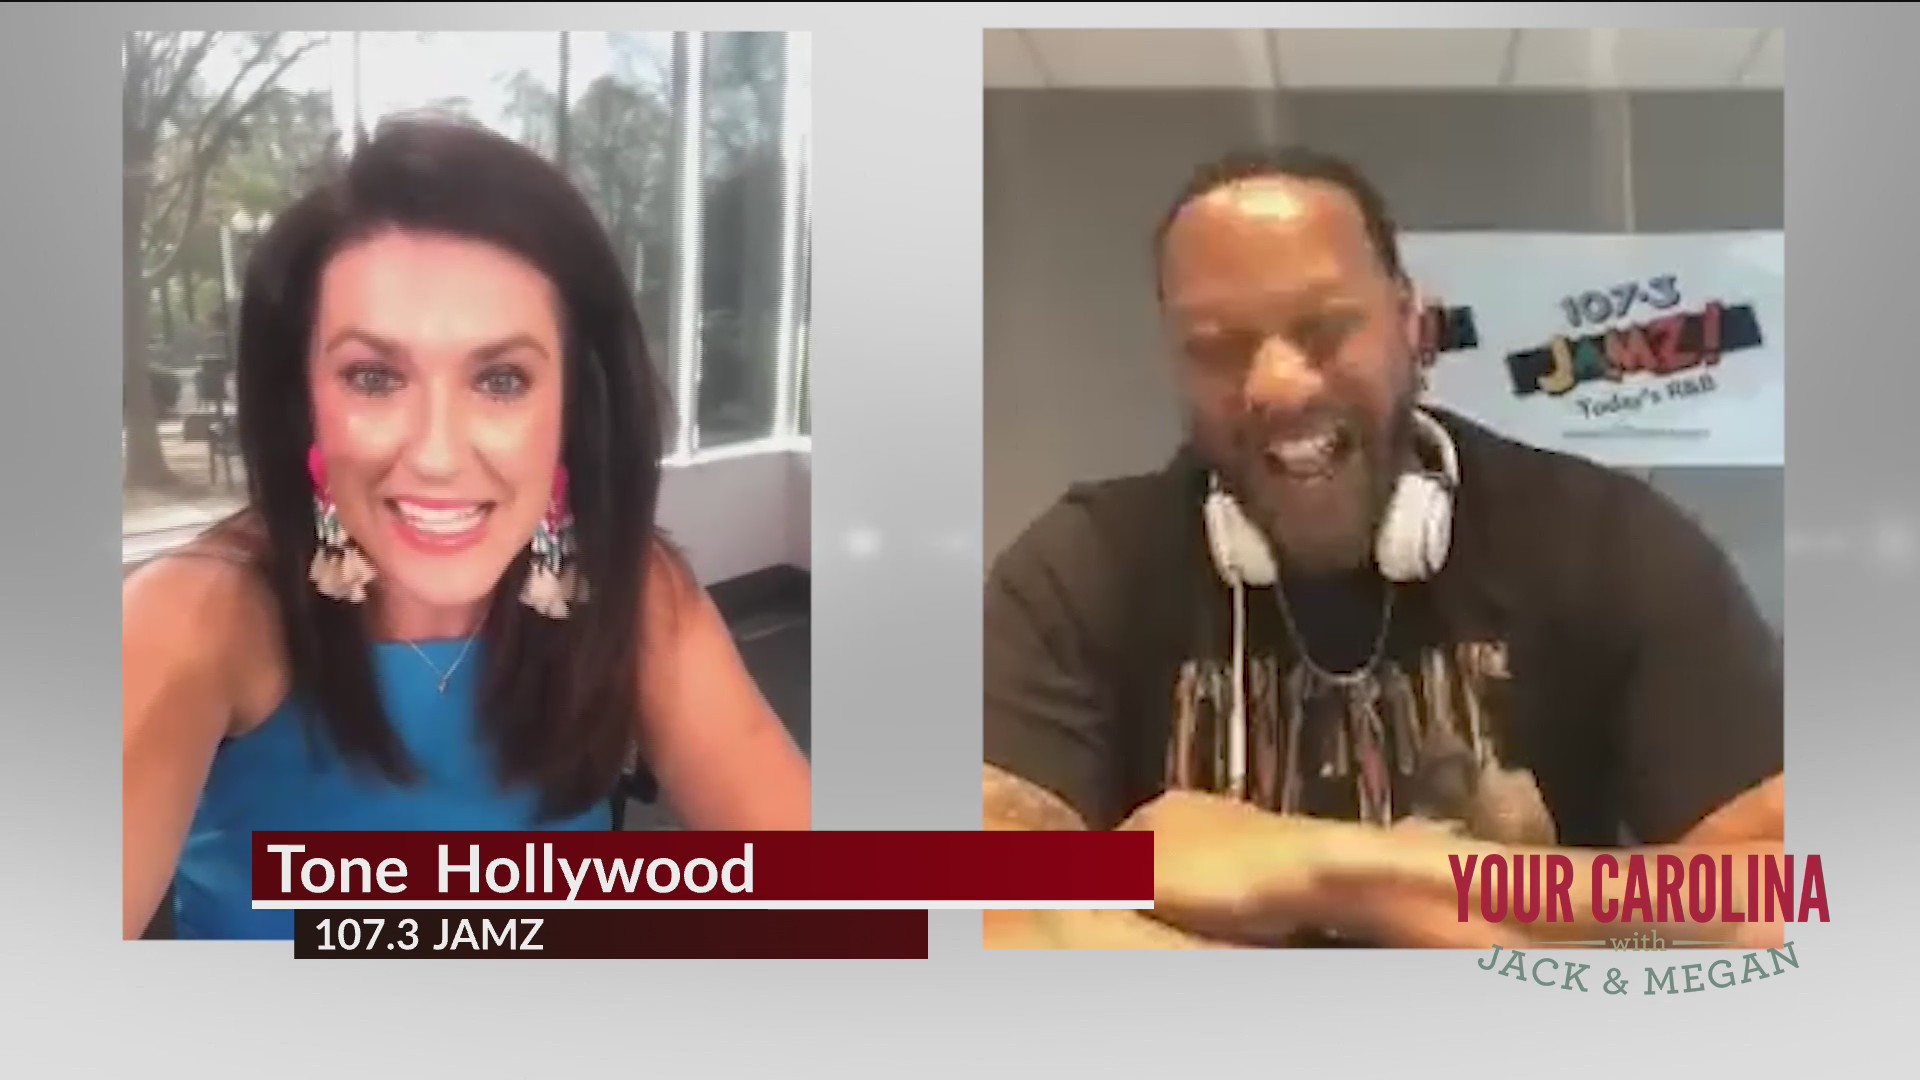 Megan Checks In With Tone Hollywood